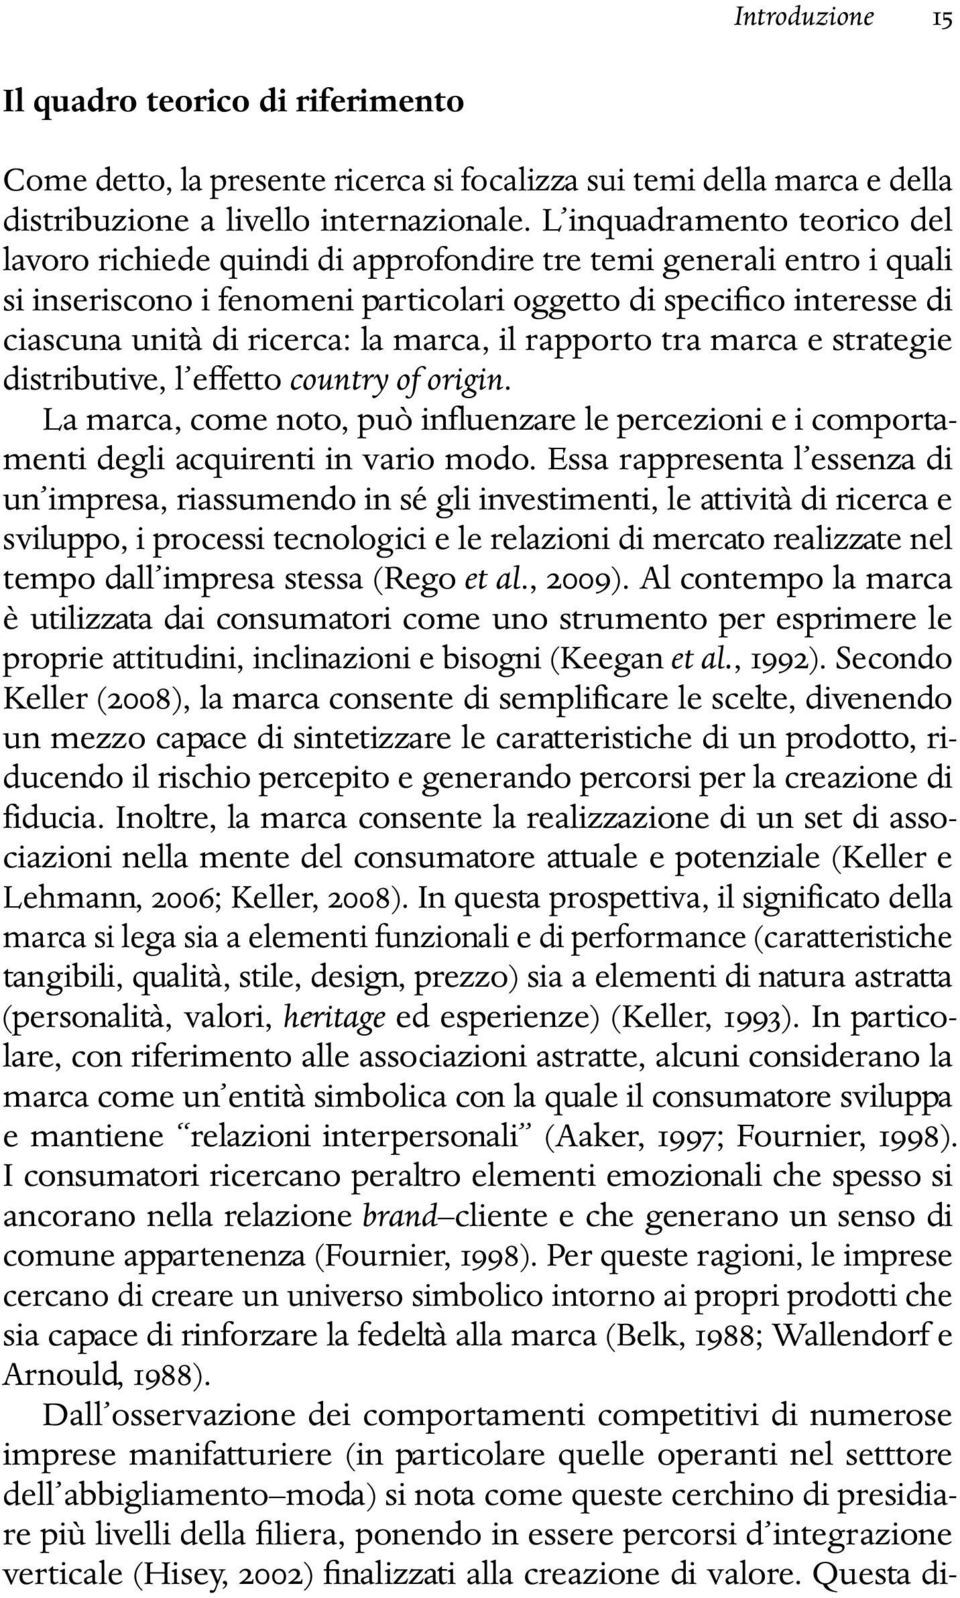 la marca, il rapporto tra marca e strategie distributive, l effetto country of origin. La marca, come noto, può influenzare le percezioni e i comportamenti degli acquirenti in vario modo.